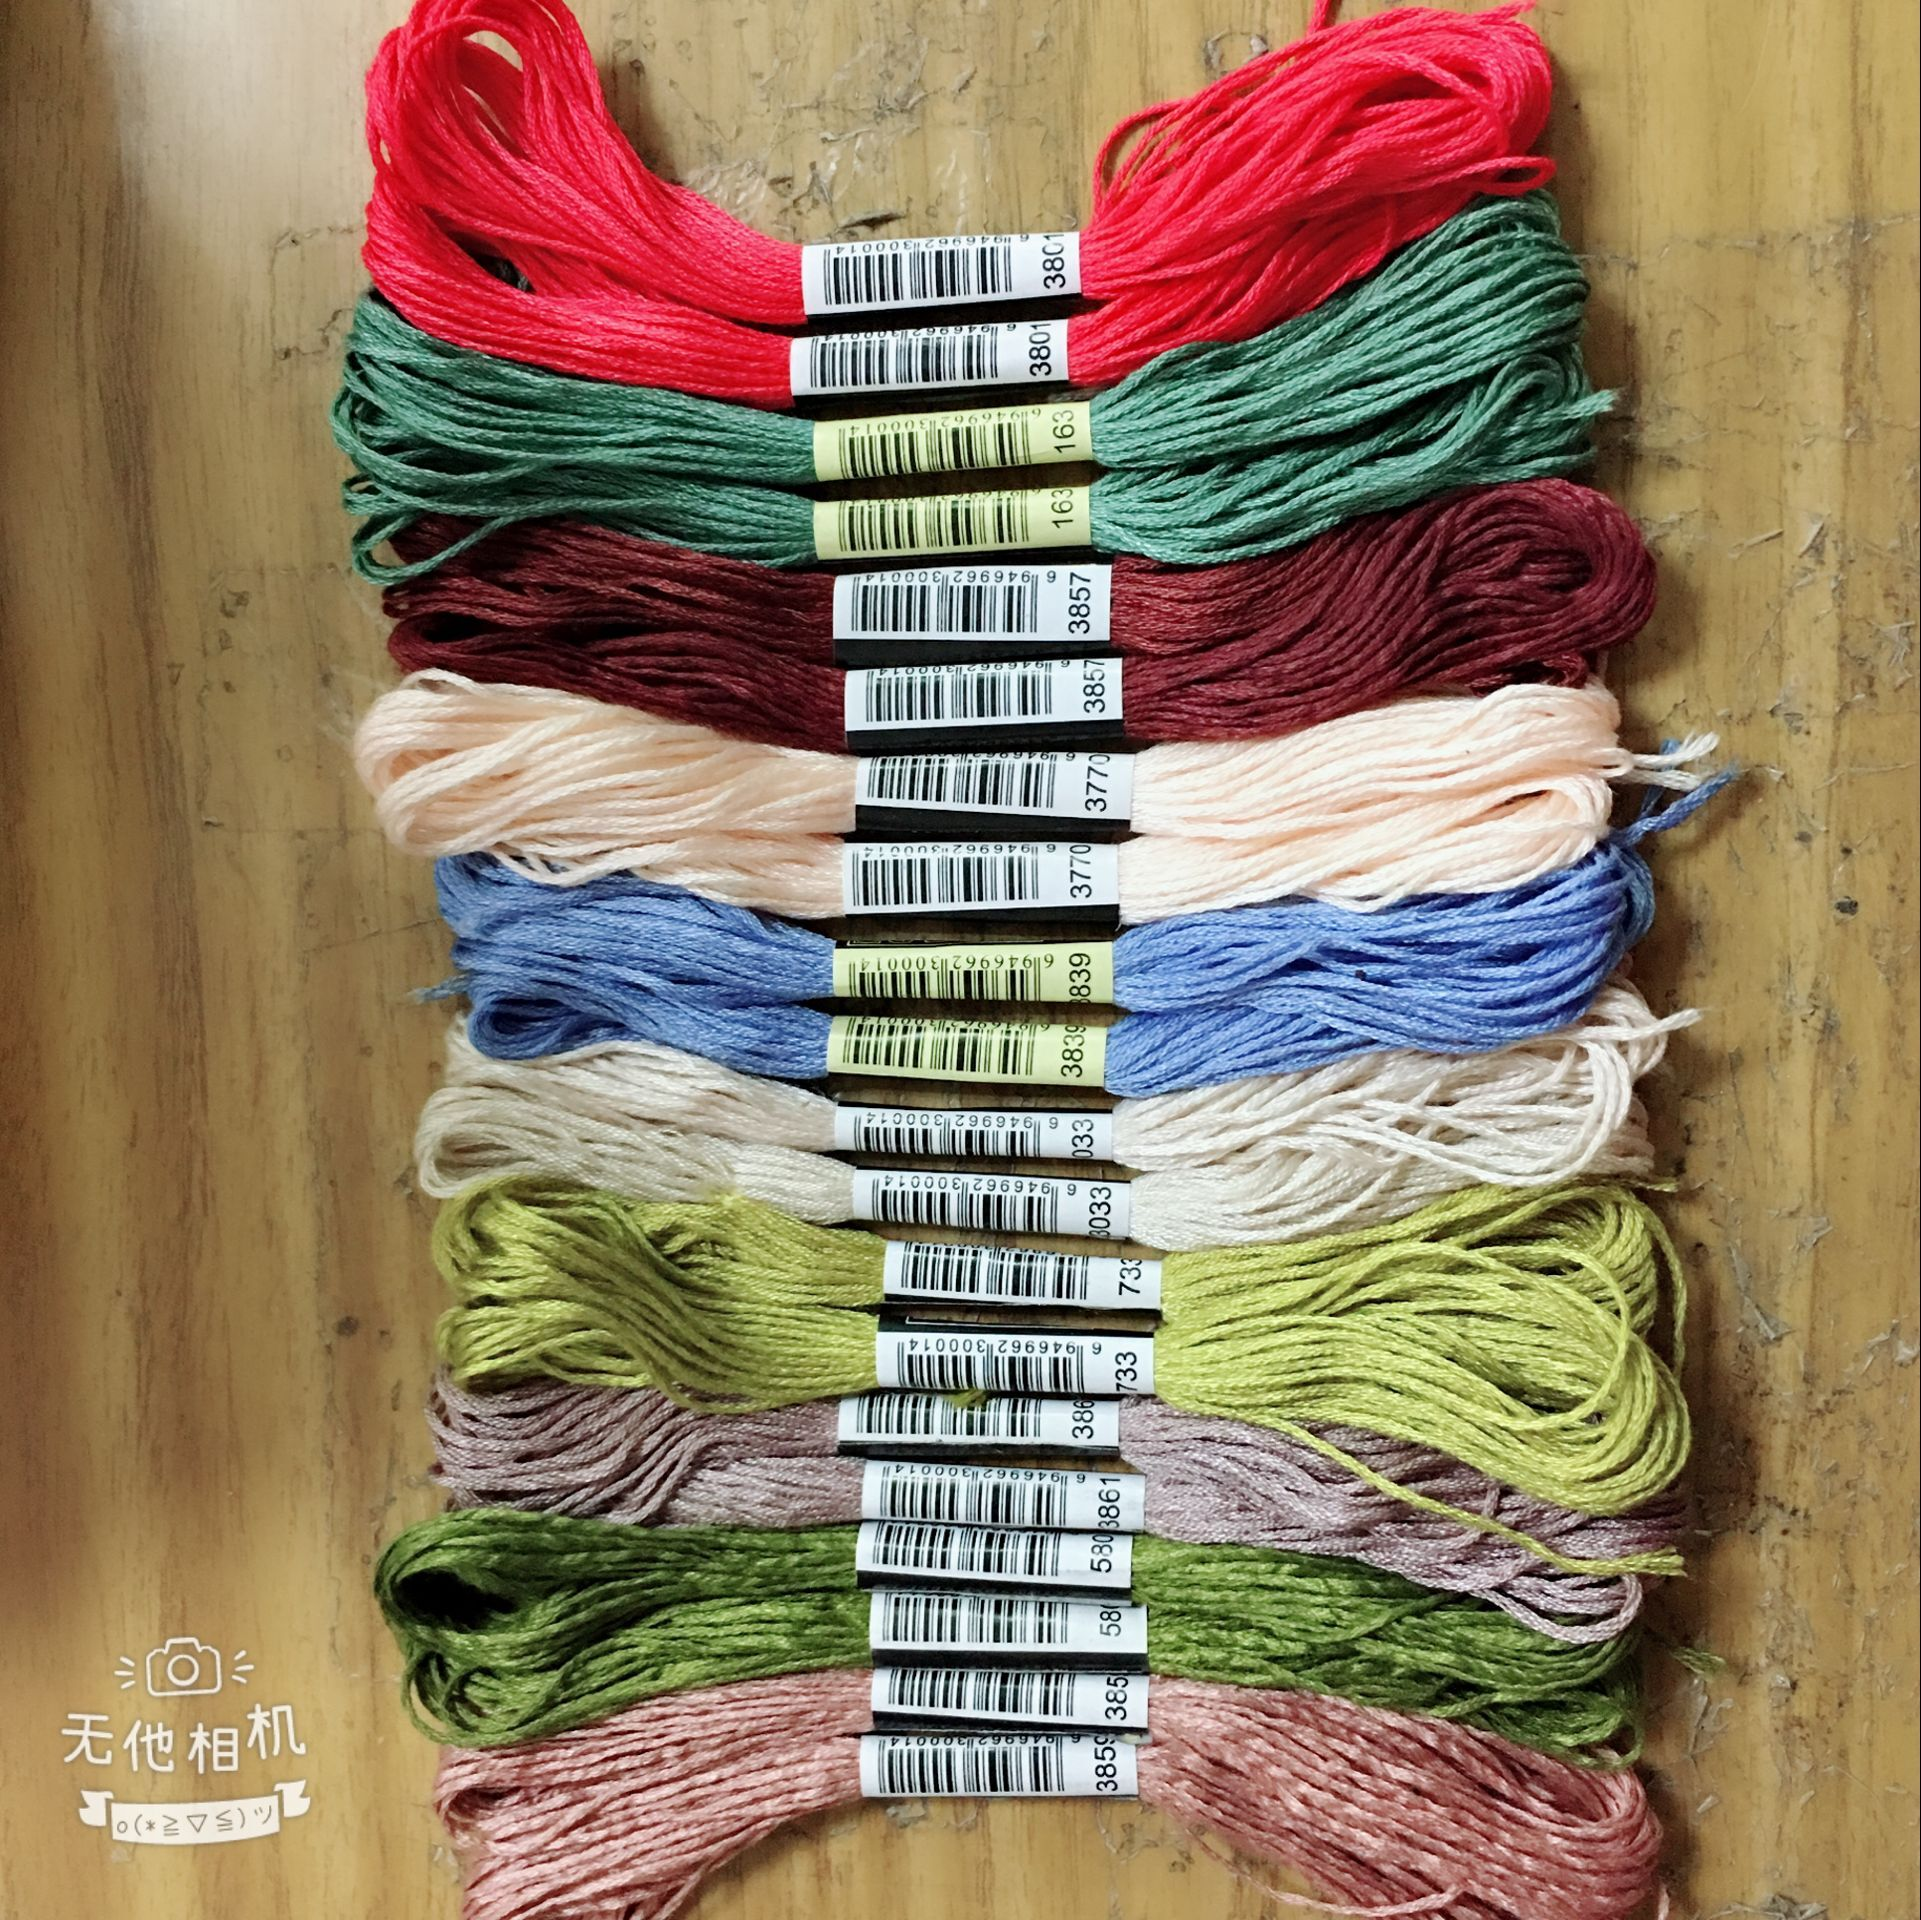 6 x Anchor Cotton Thread sewing embroidery floss skeins solid bright color